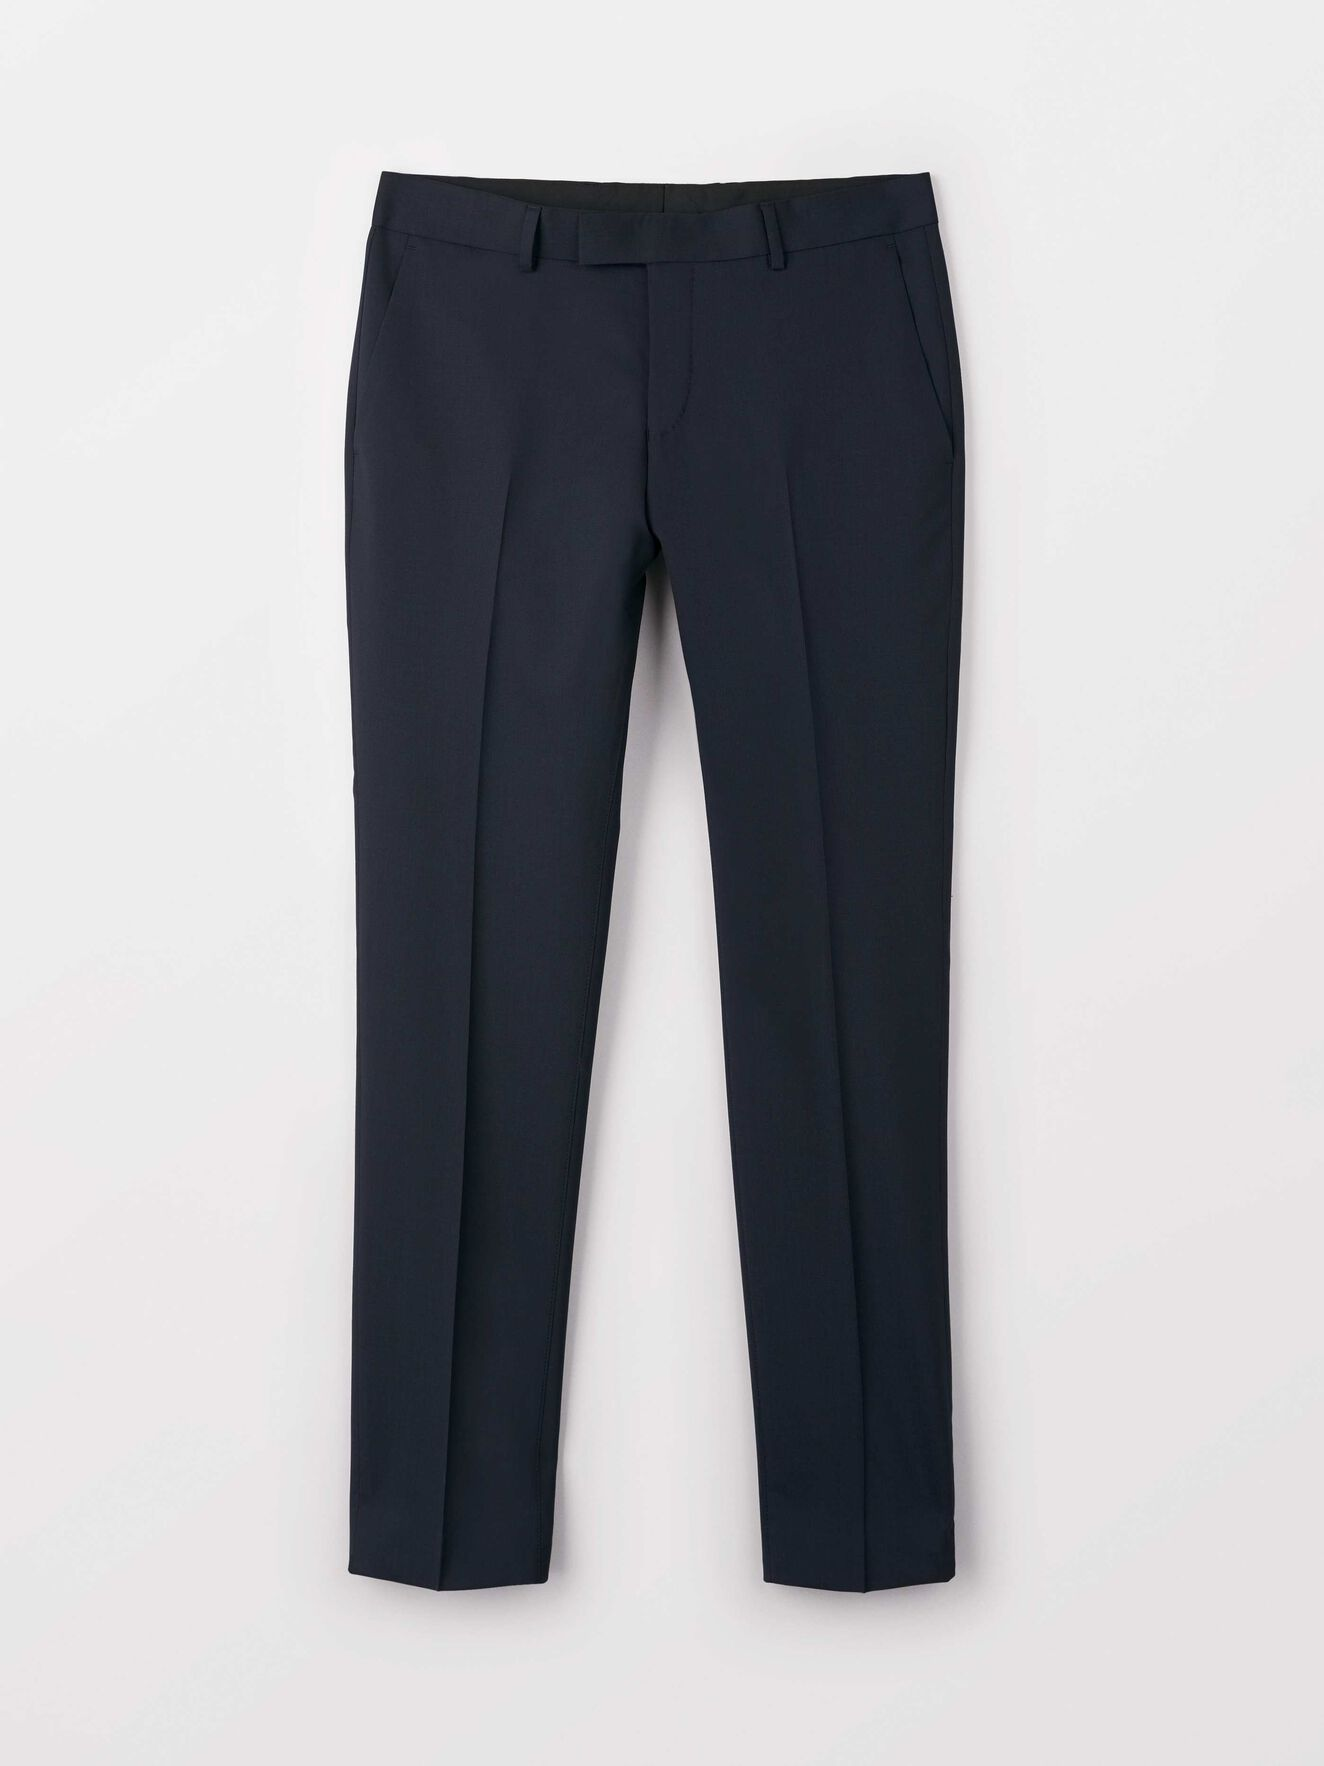 Gordon Trousers in Sky Captain from Tiger of Sweden